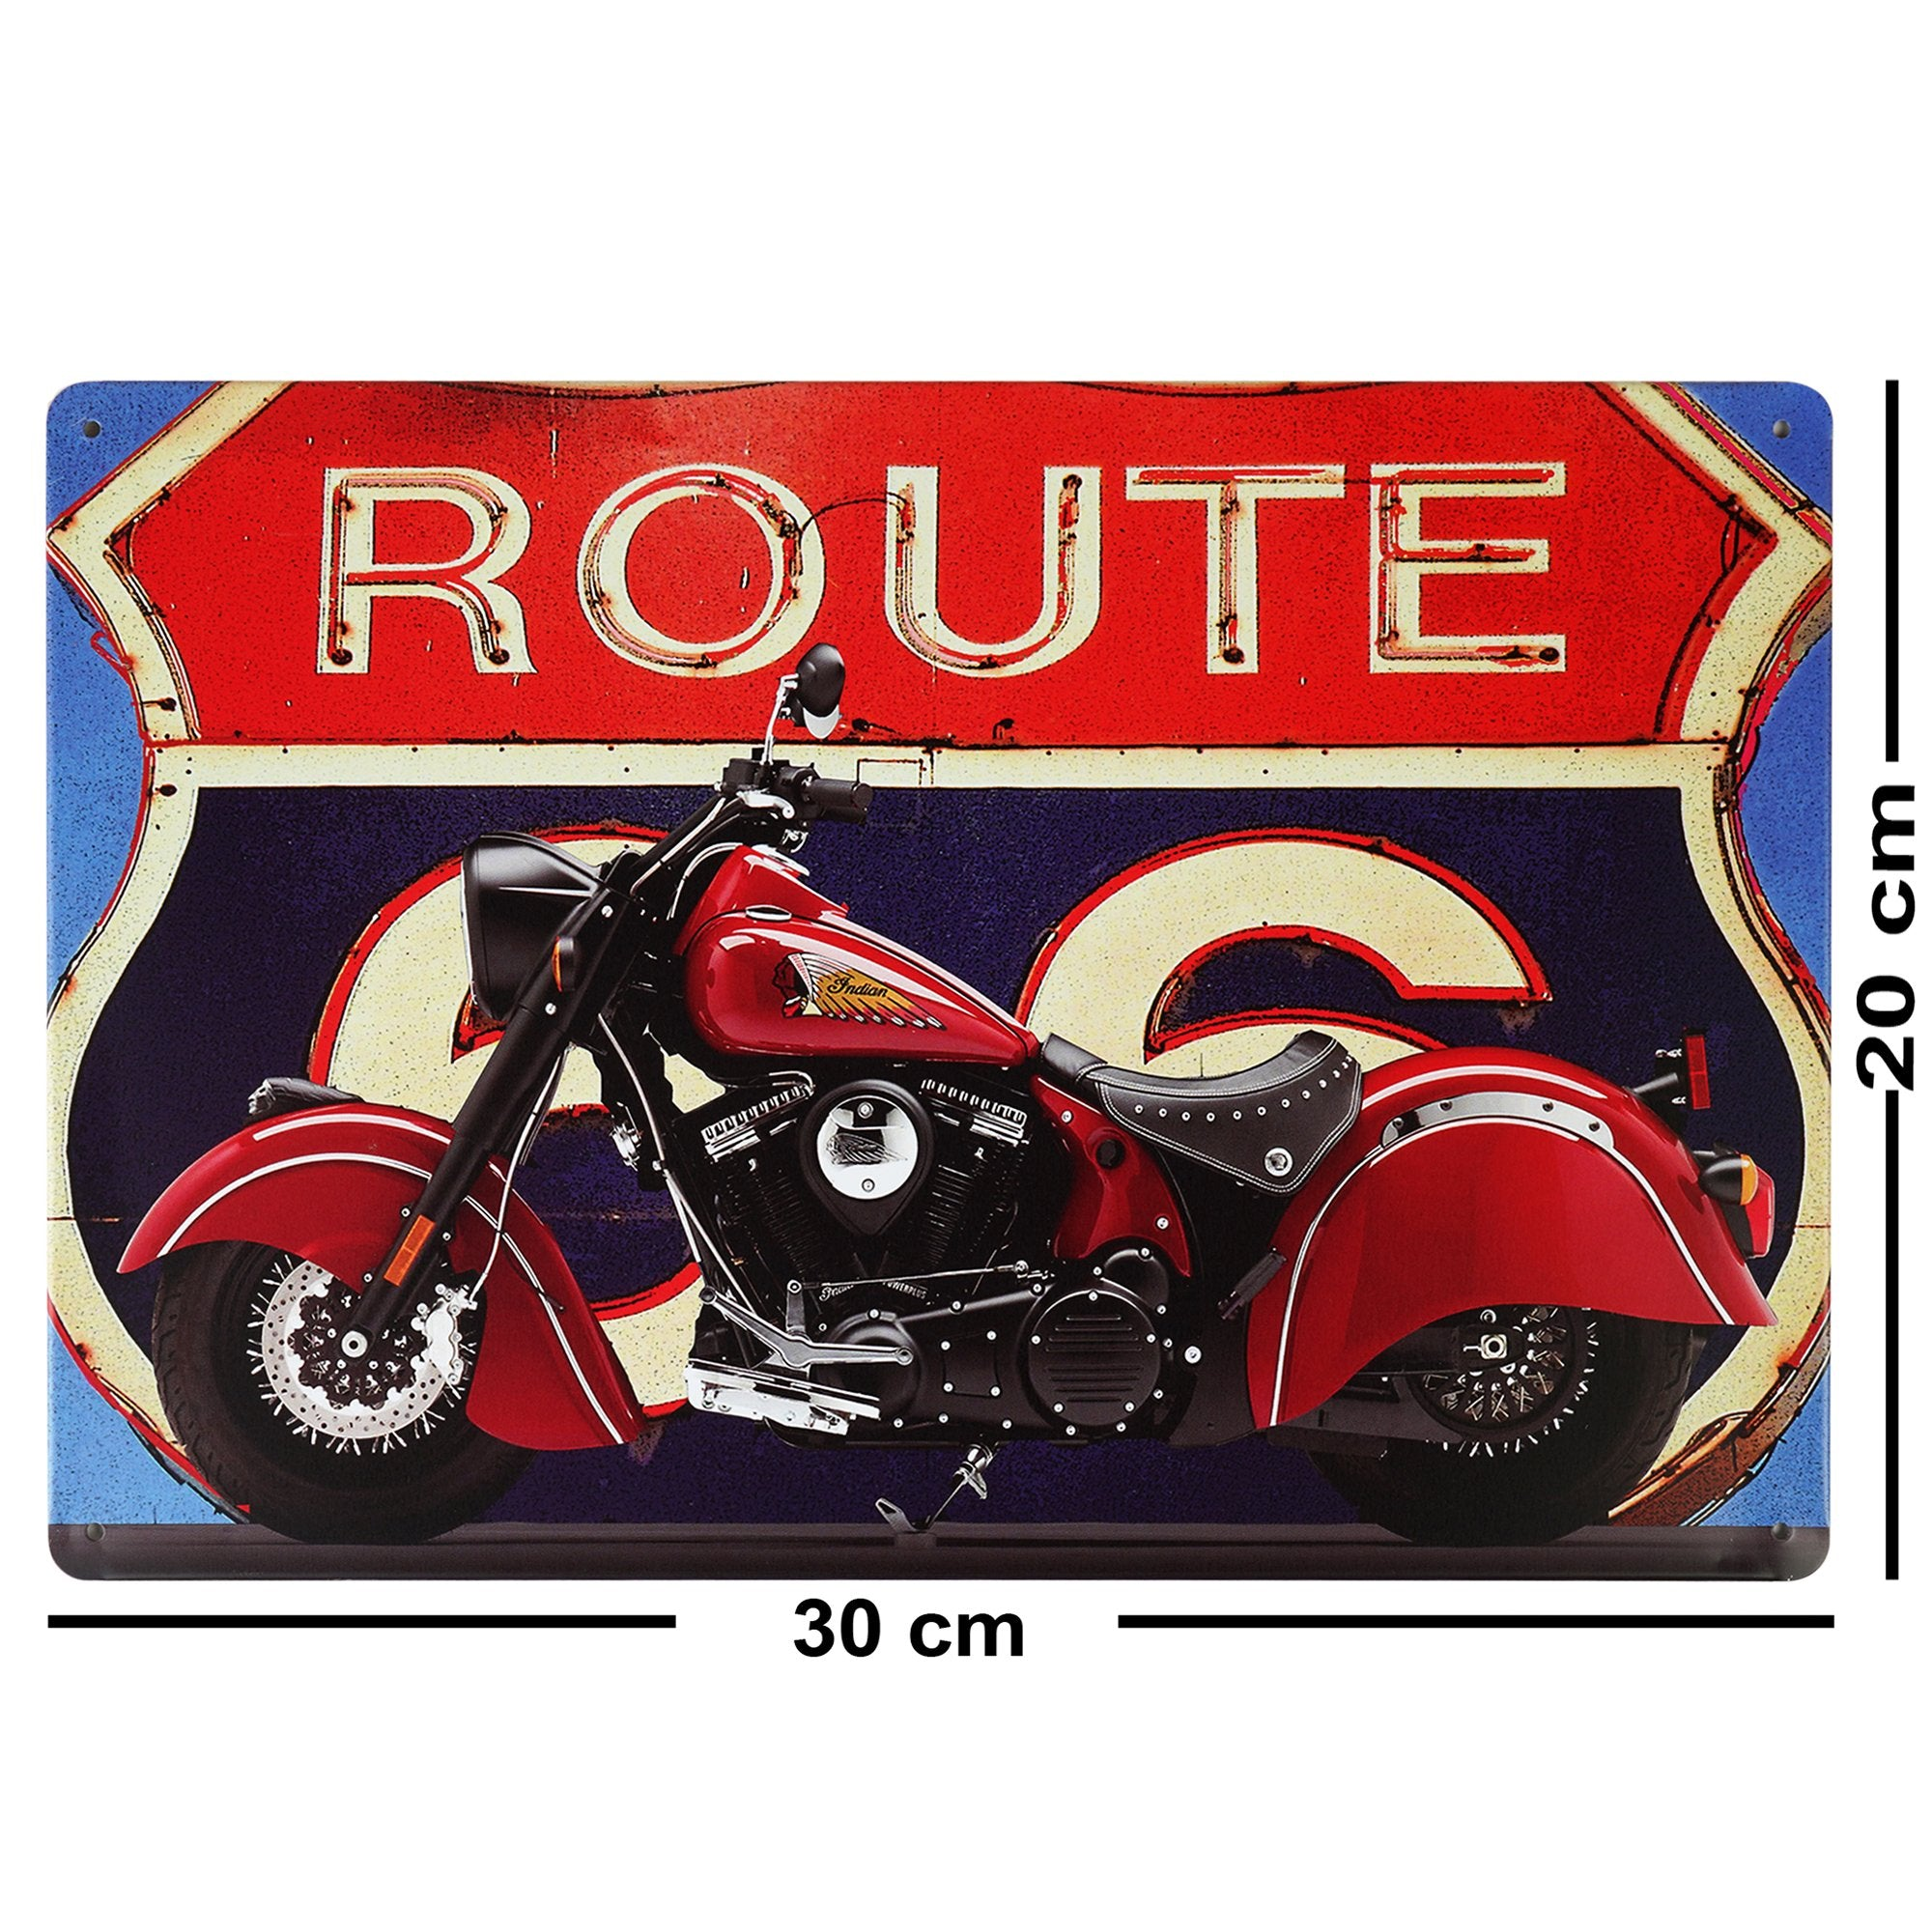 U.S. Route 66 Wall Plaque